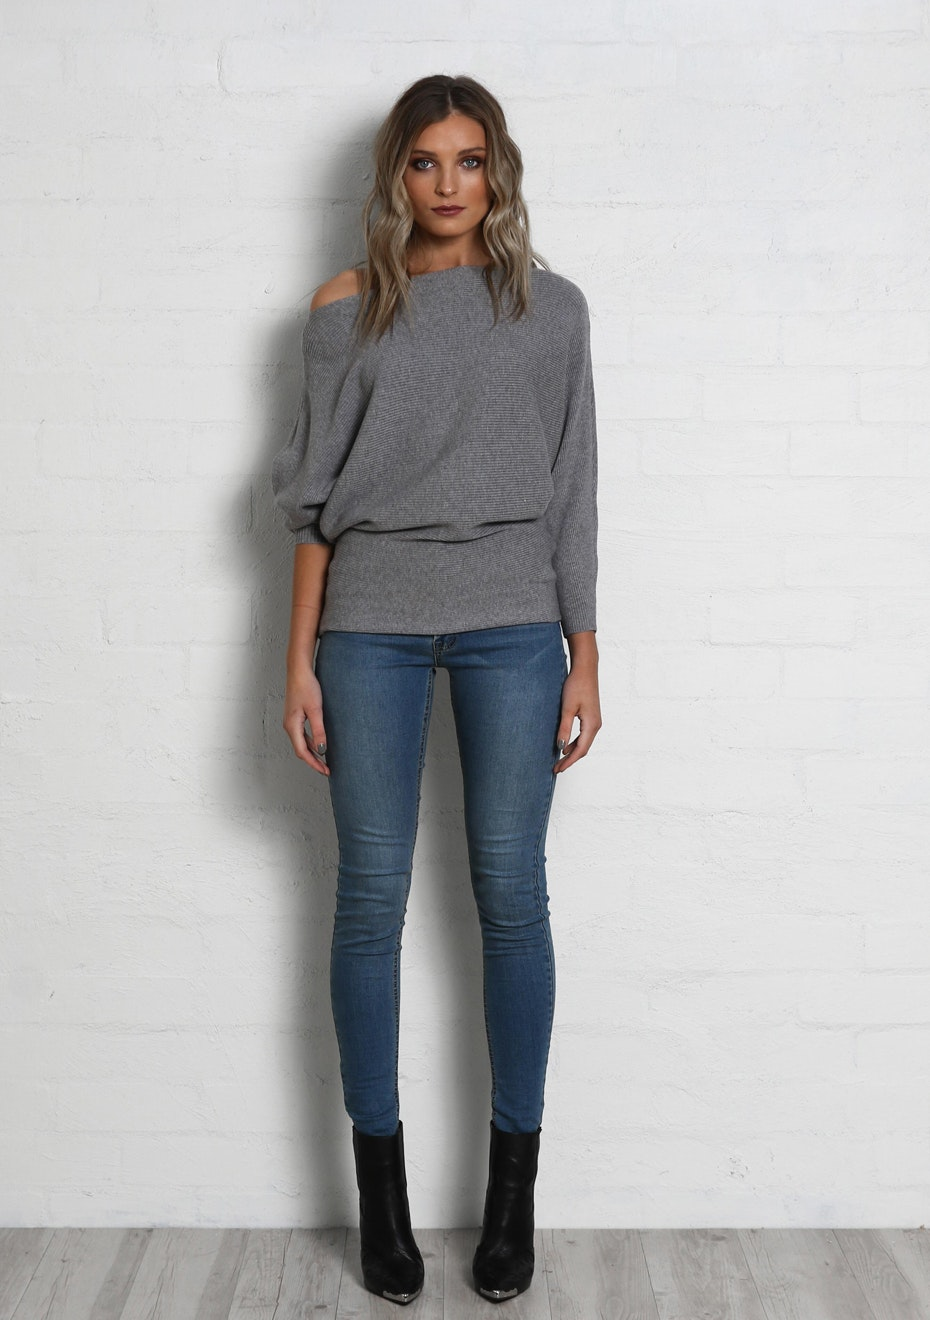 Madison - SWEET NOTHINGS KNIT - GREY